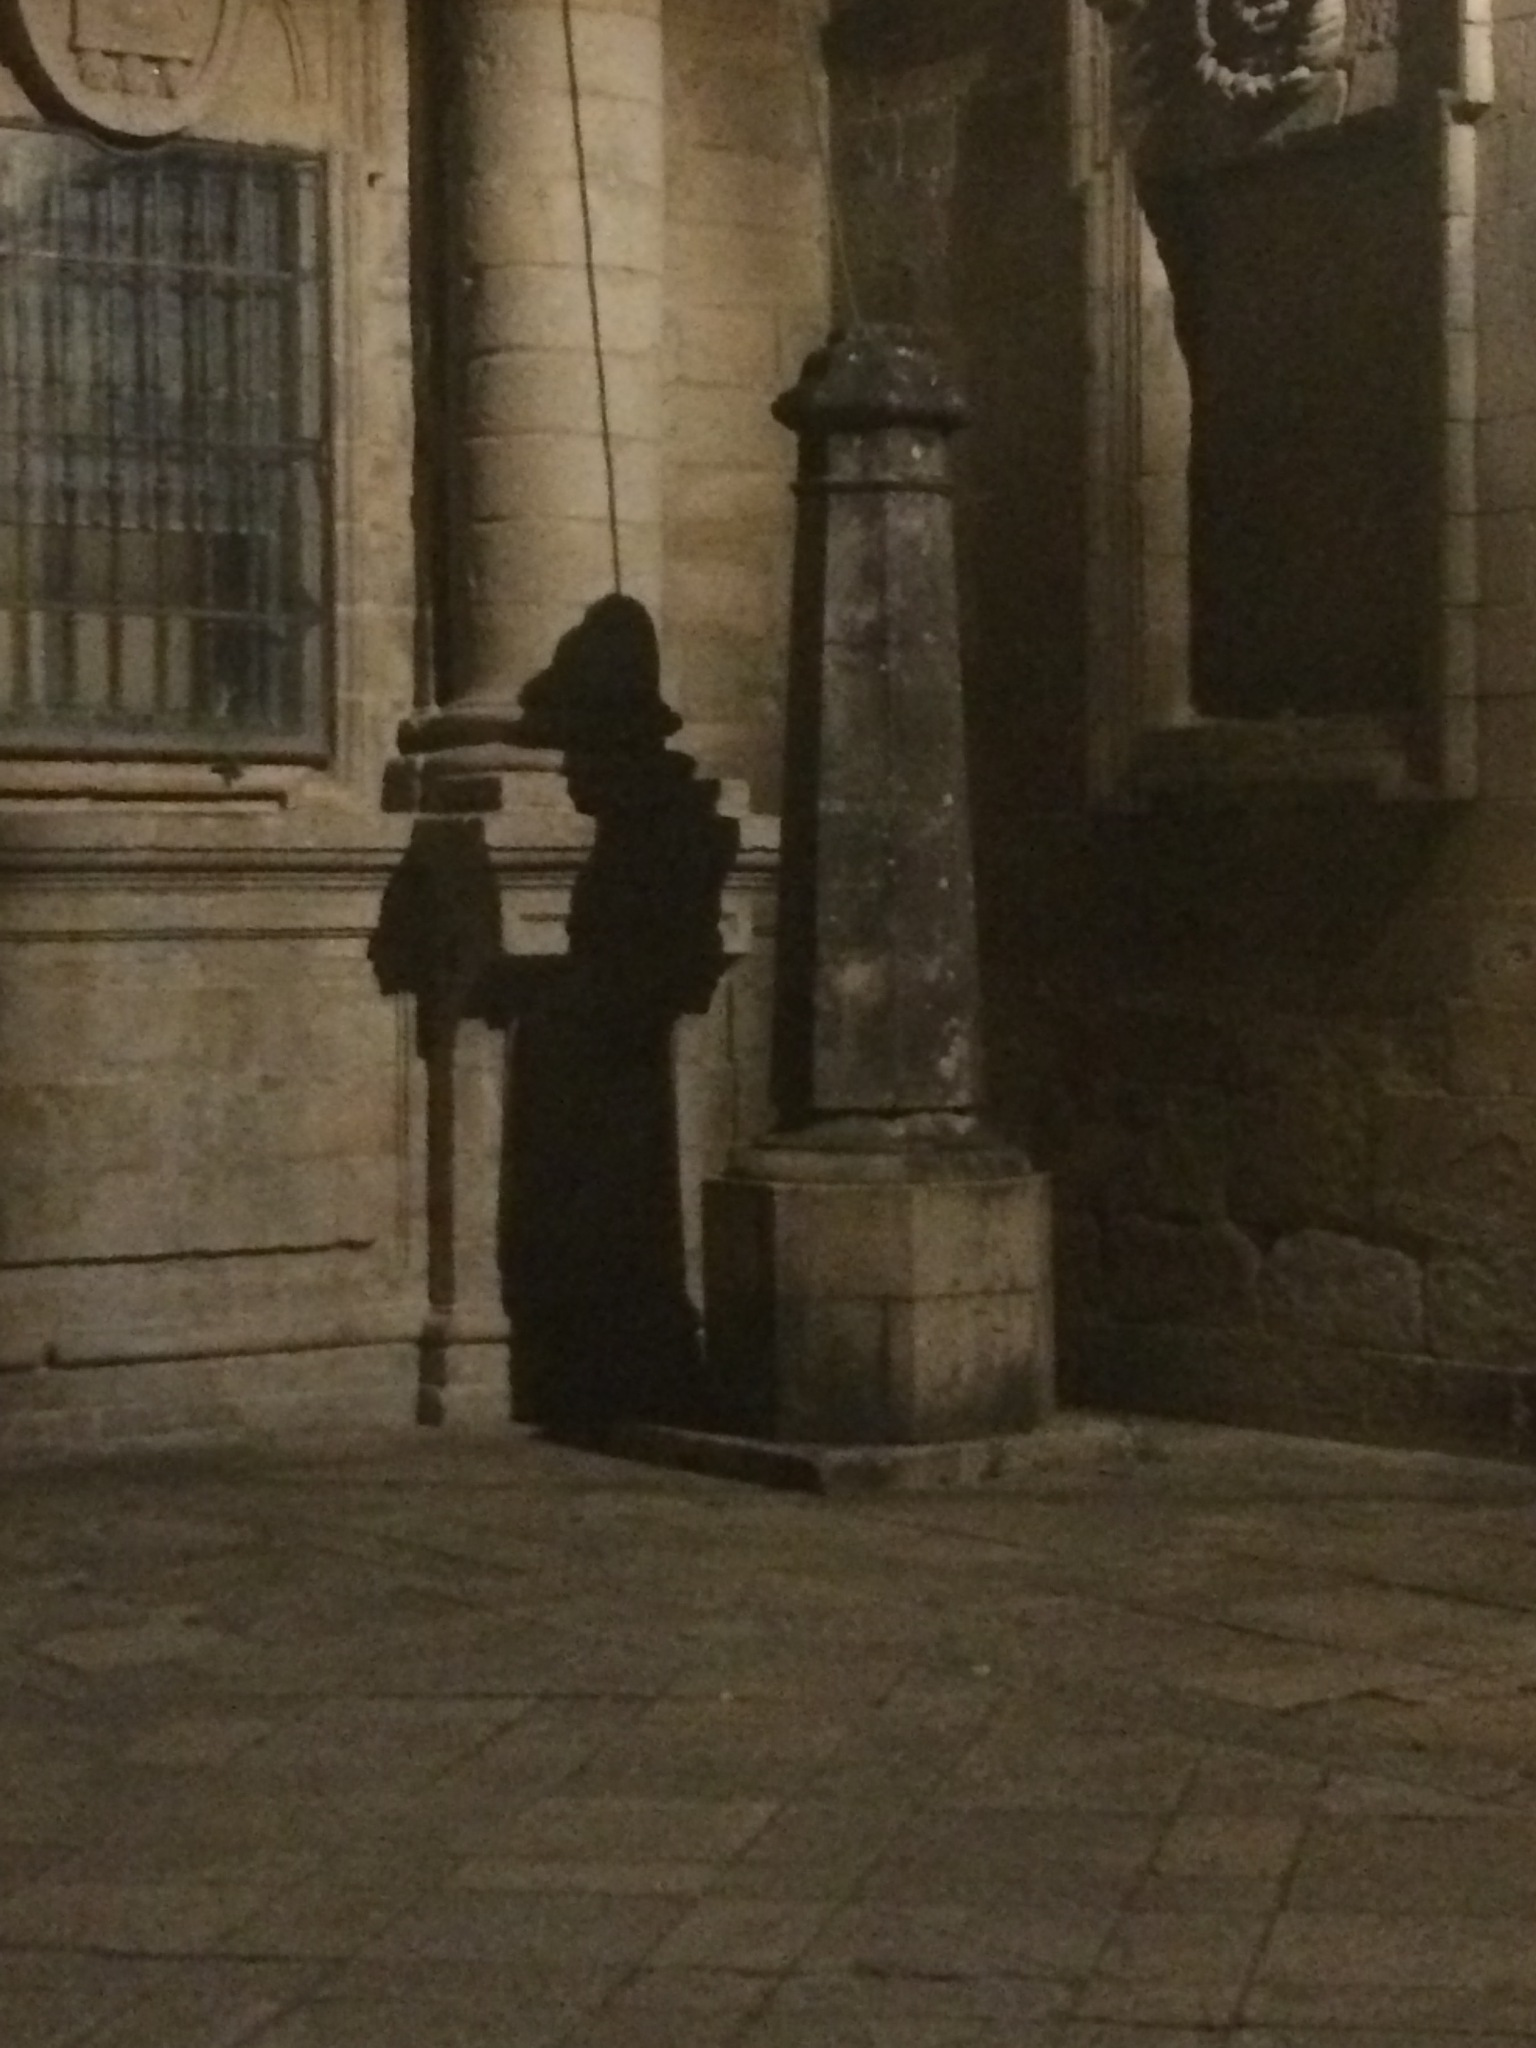 Mysterious pilgrim shadow by Renato Torres